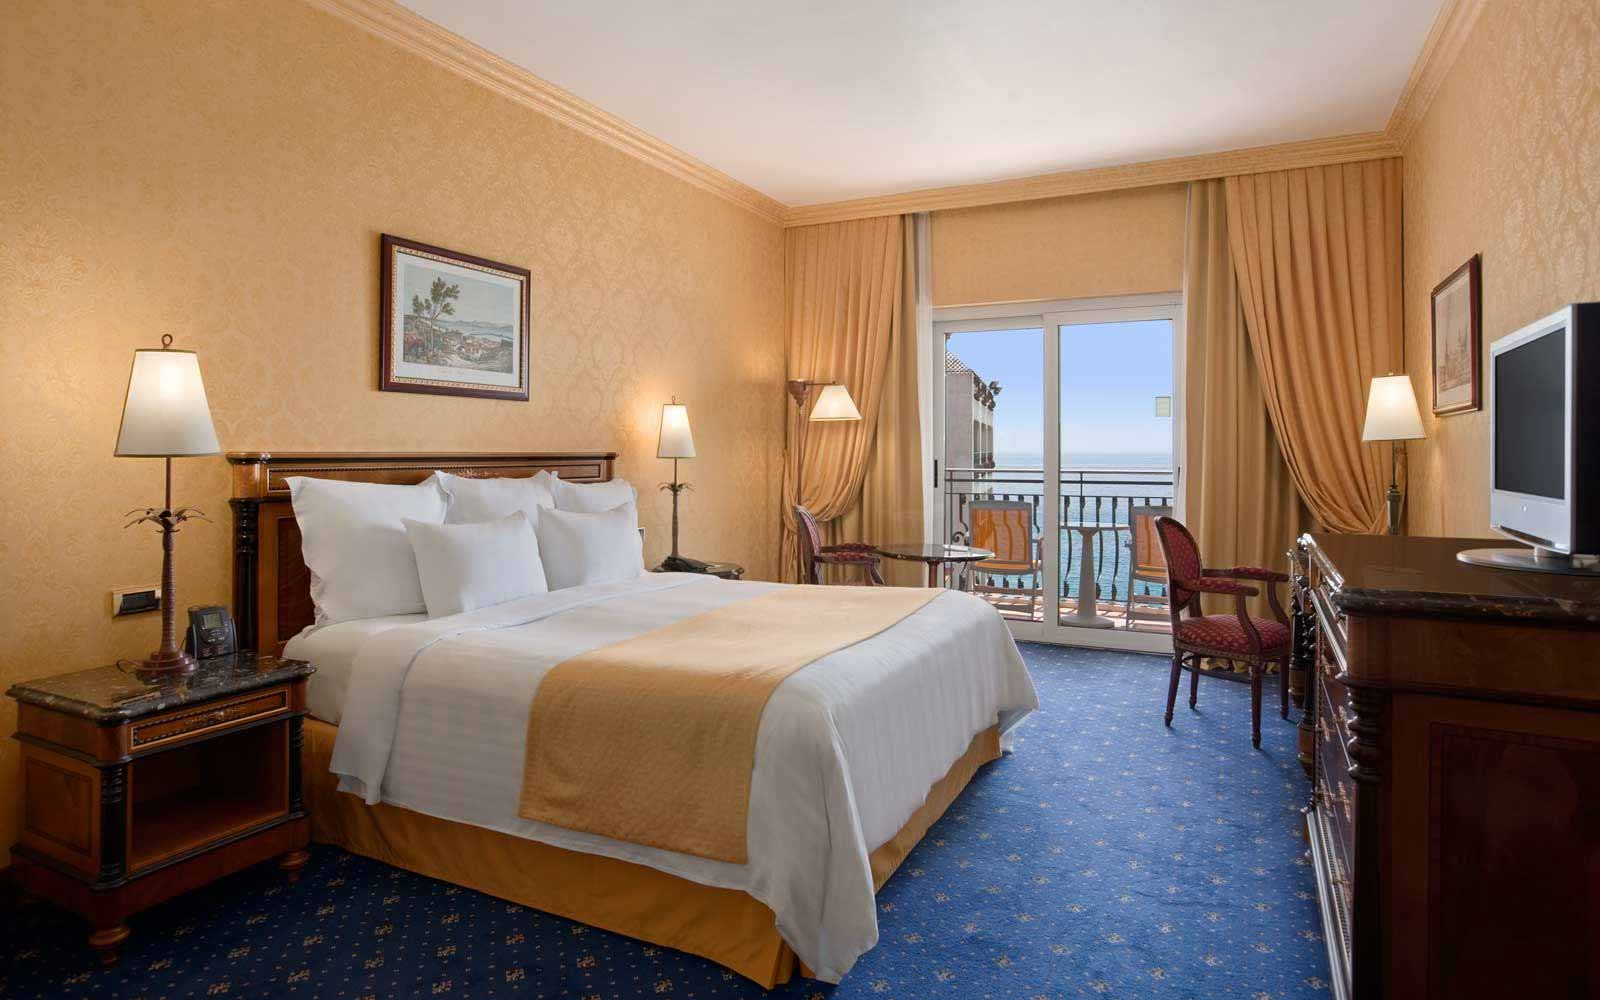 Guest room plus at the Hilton Giardini Naxos